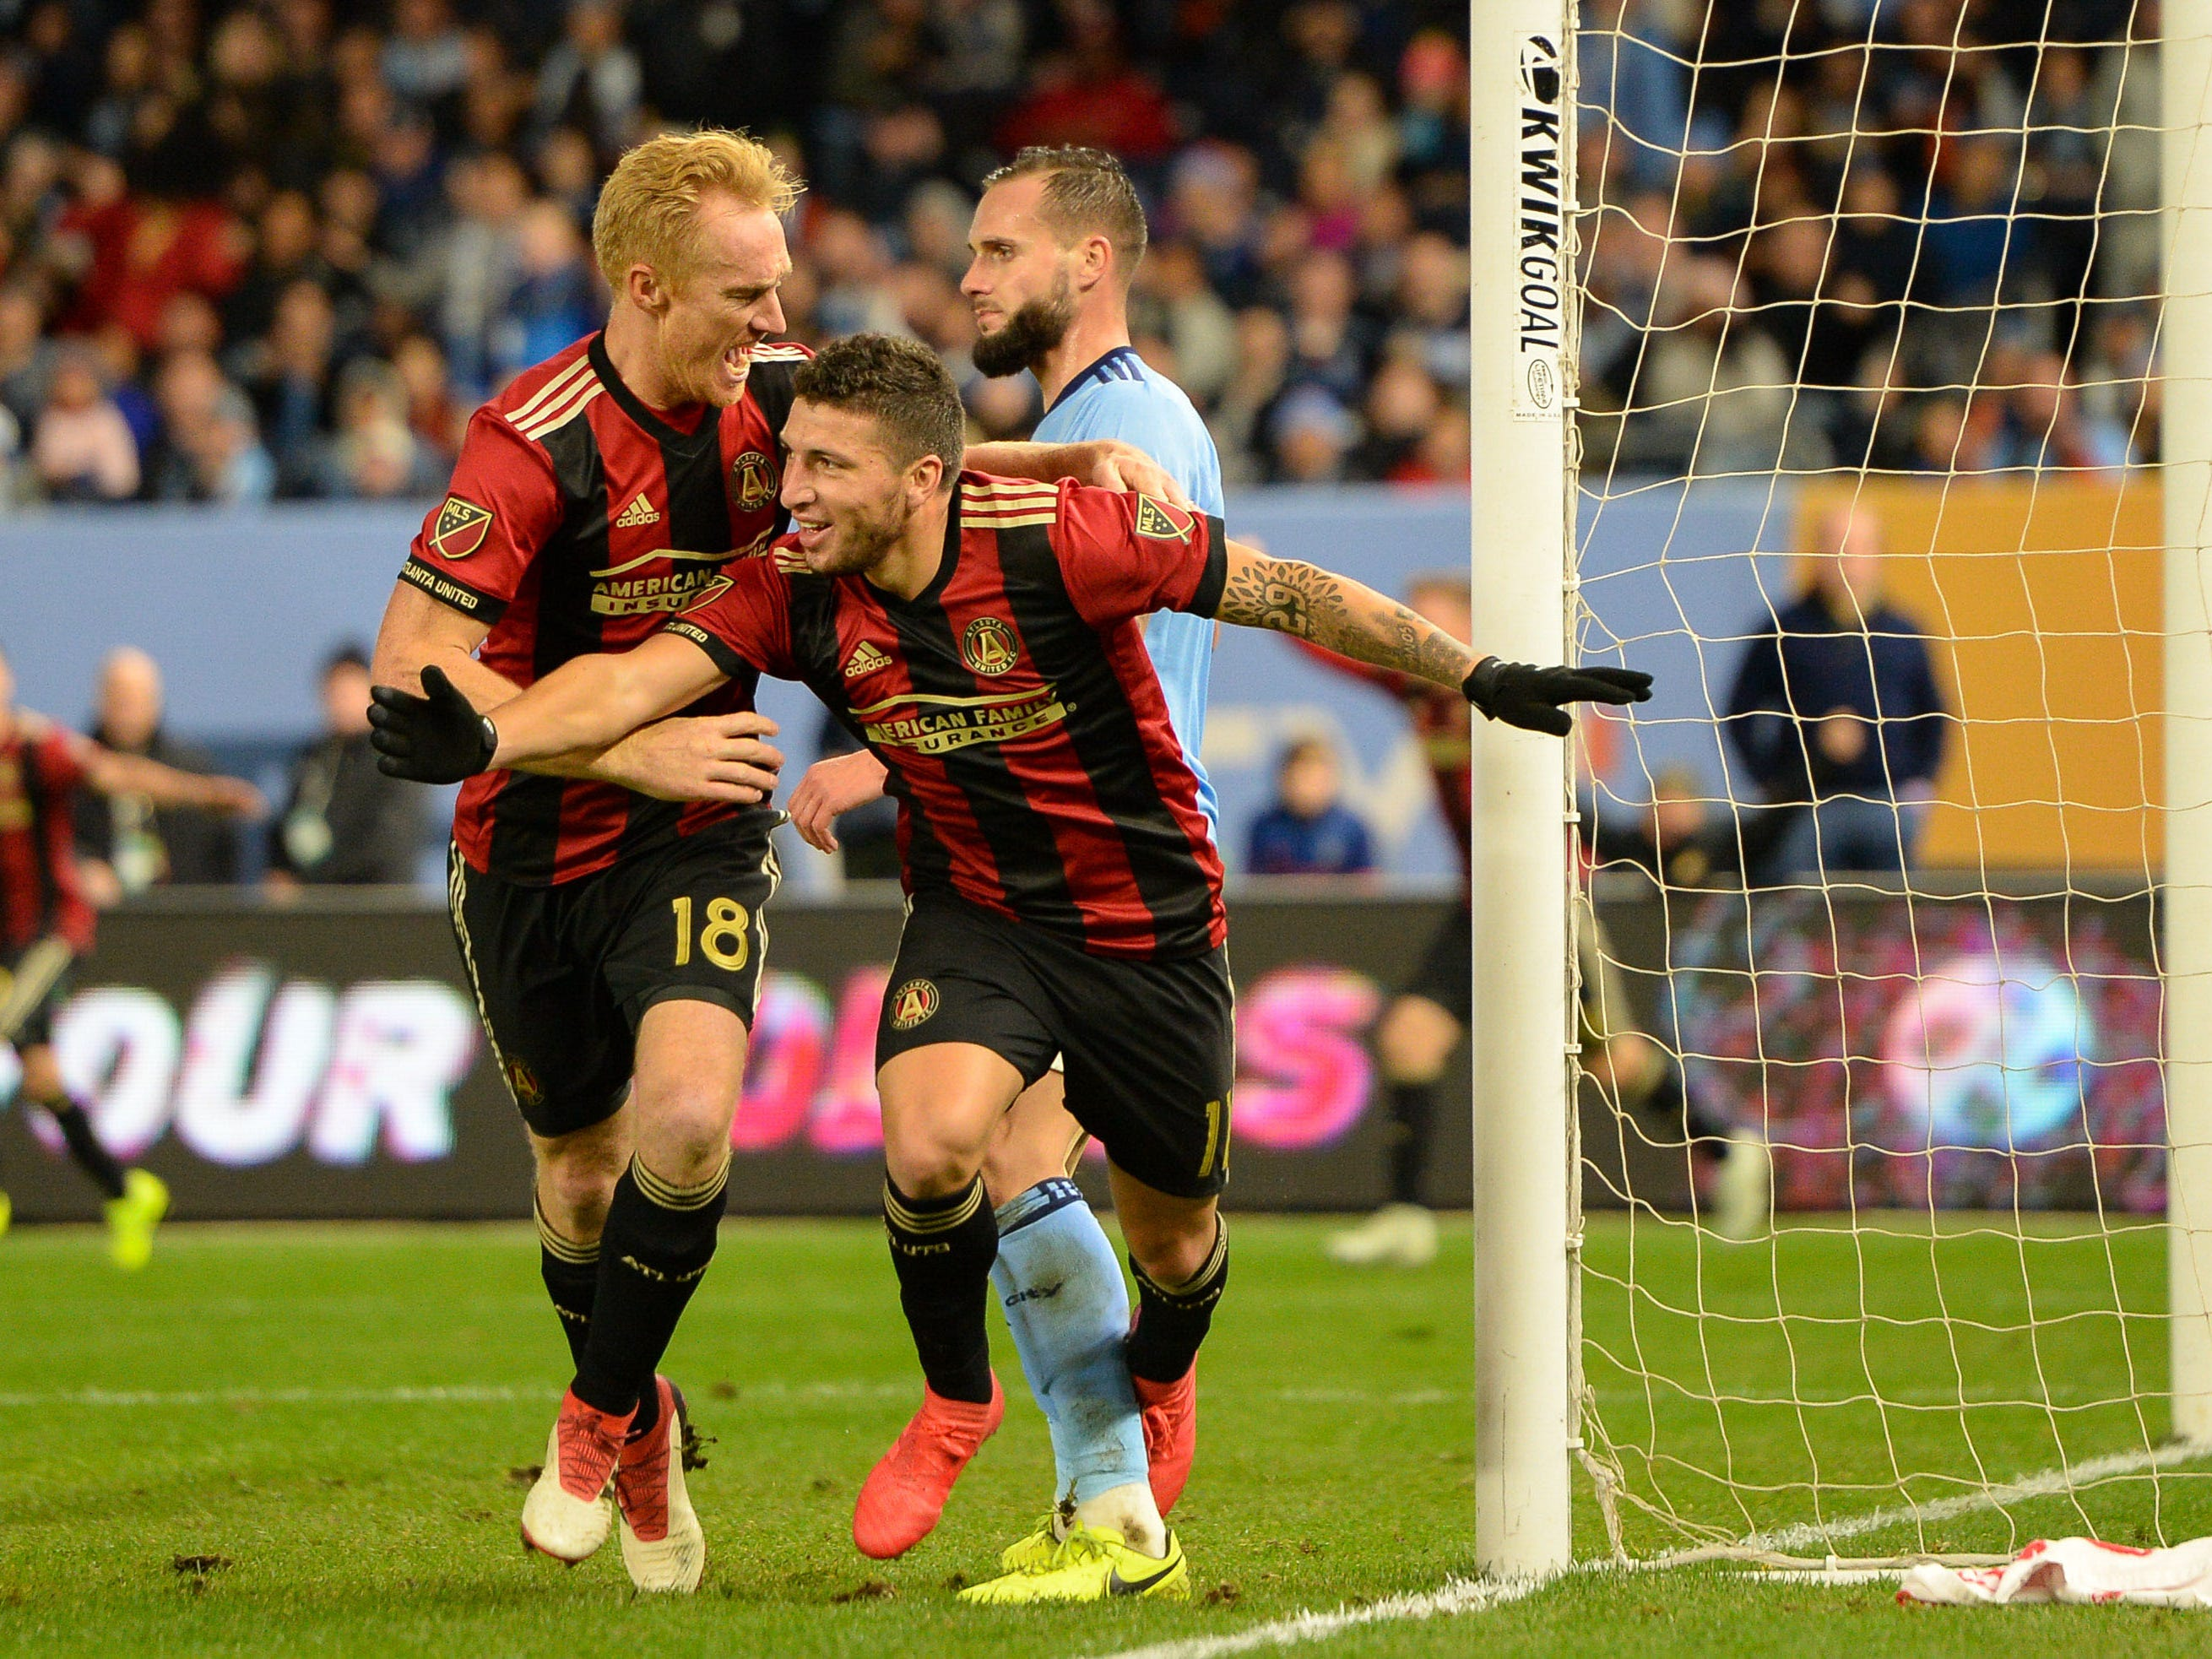 Atlanta United midfielder Eric Remedi (11) celebrates his goal with teammate Jeff Larentowicz (18) against New York City FC  during the first half at Yankee Stadium.